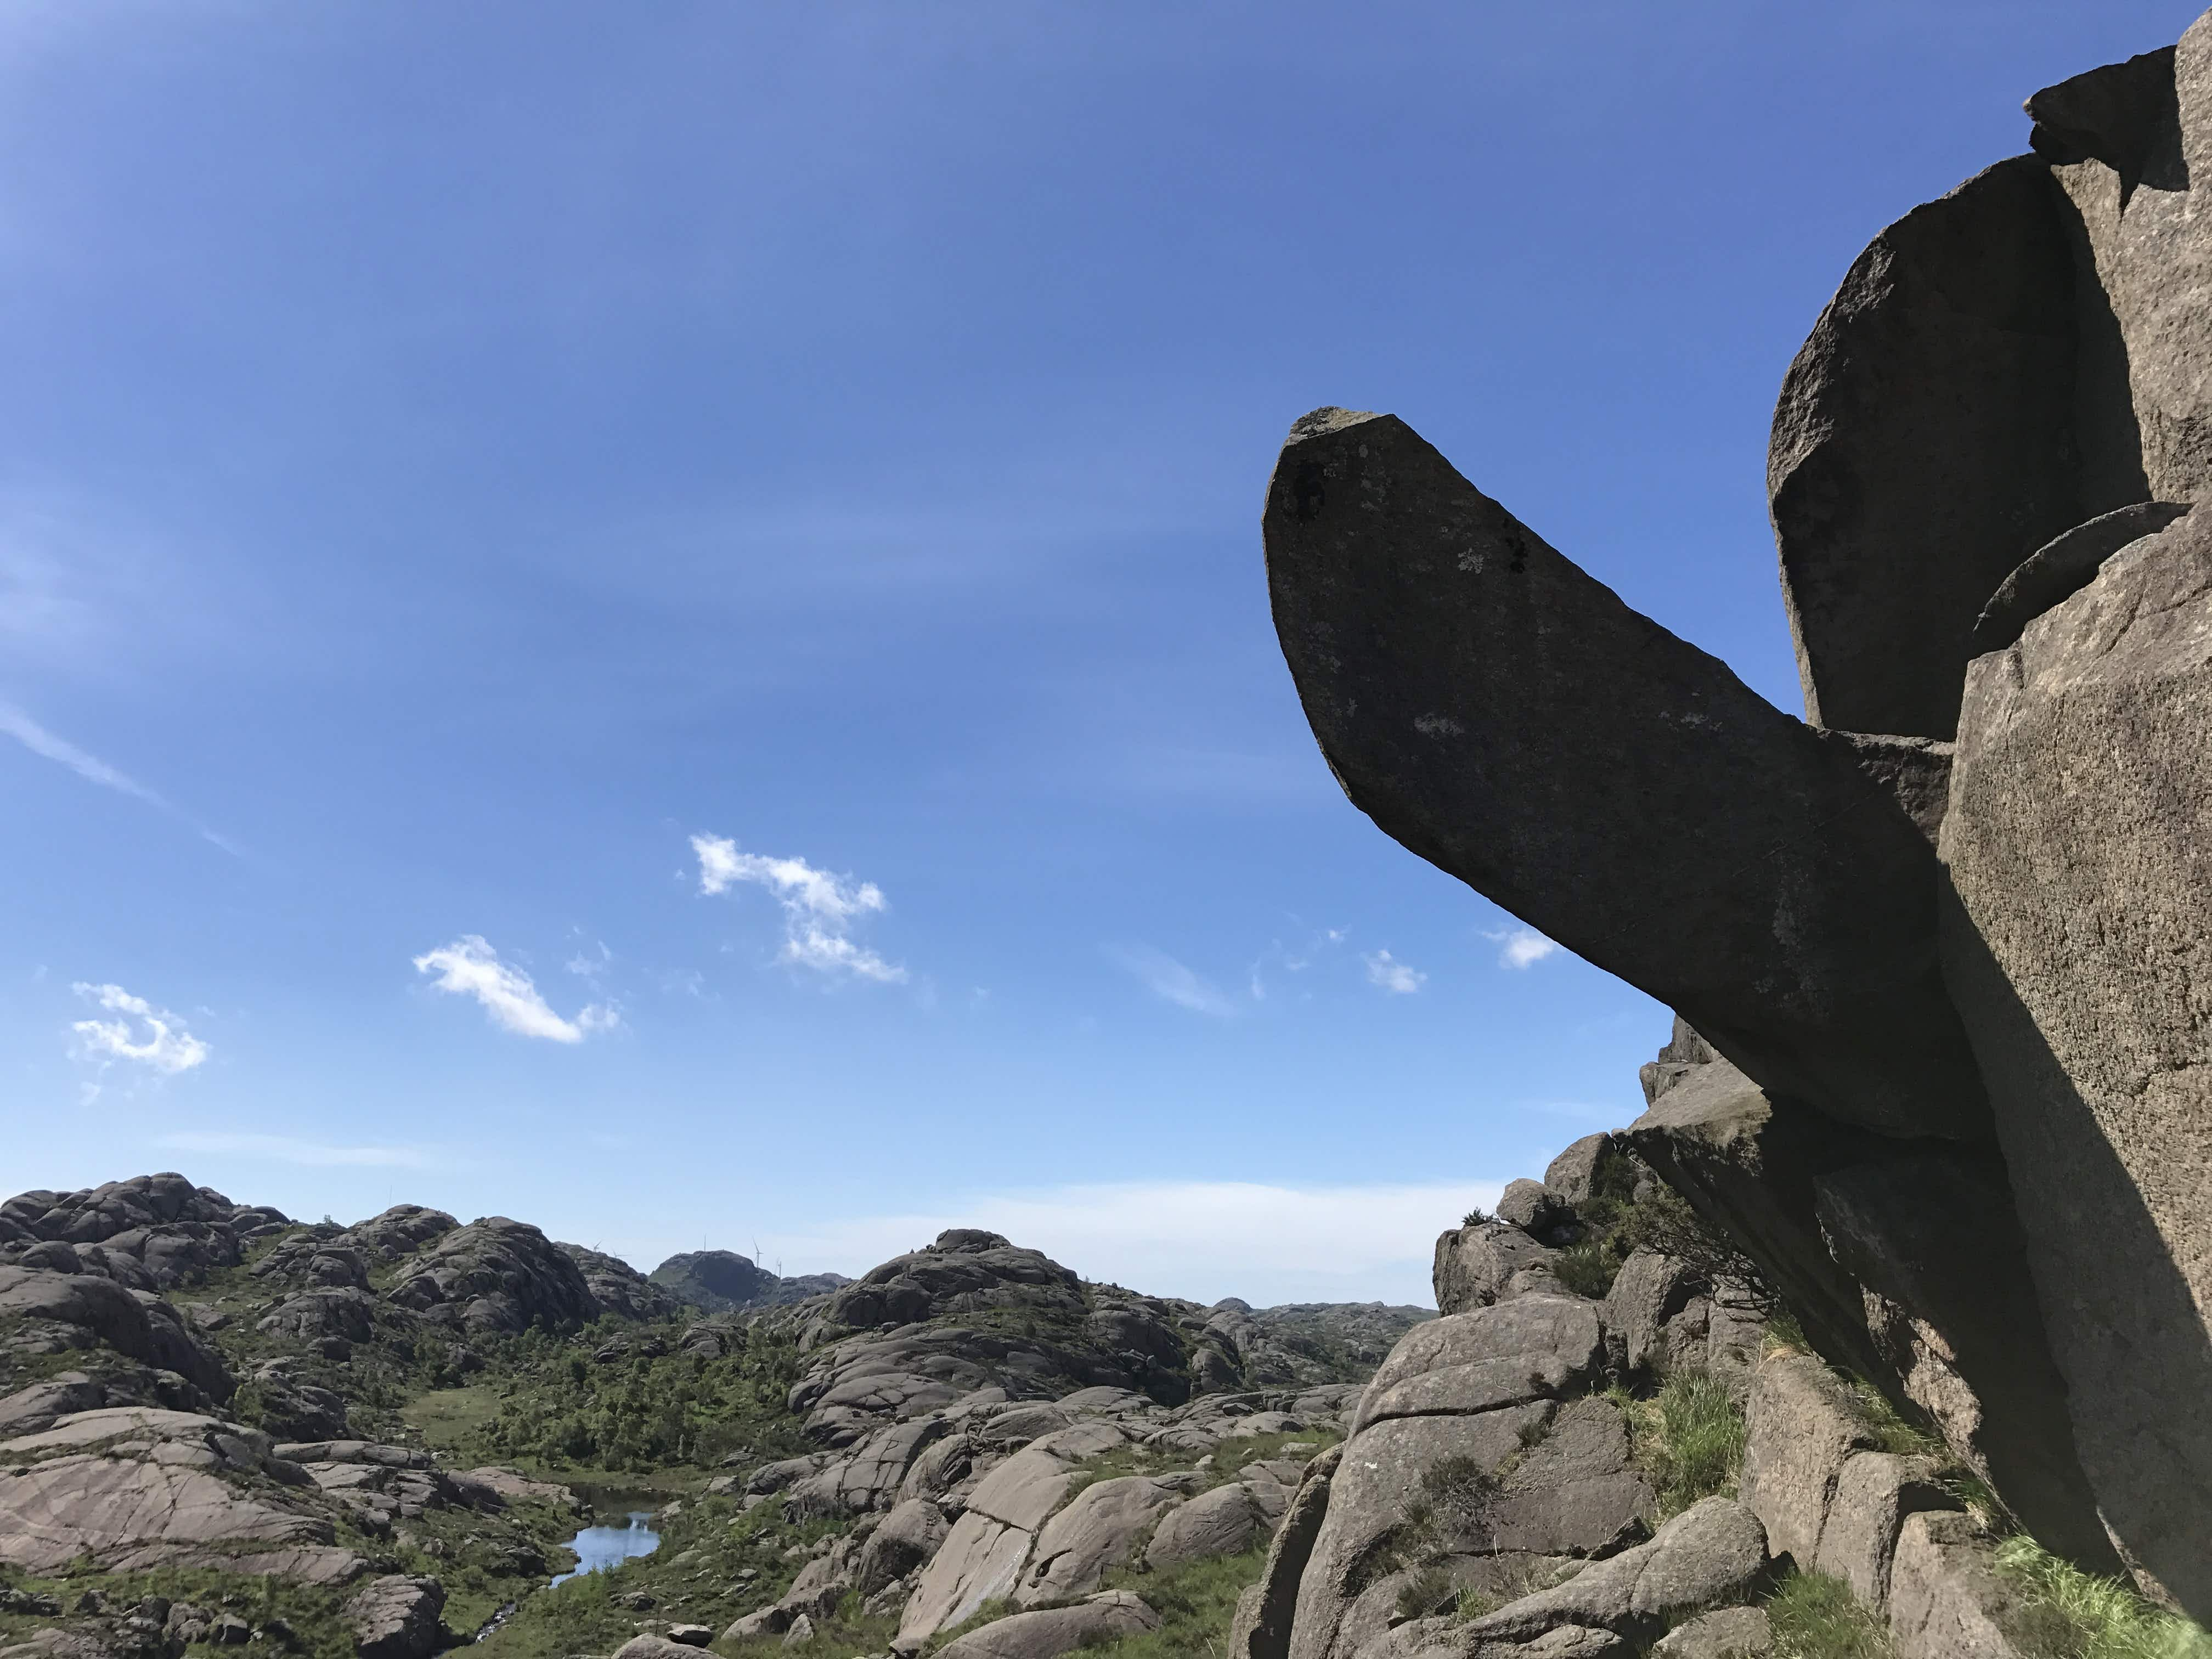 Norway's cheekiest rock formation, Trollpikken, has been re-erected thanks to a crowdfunding campaign